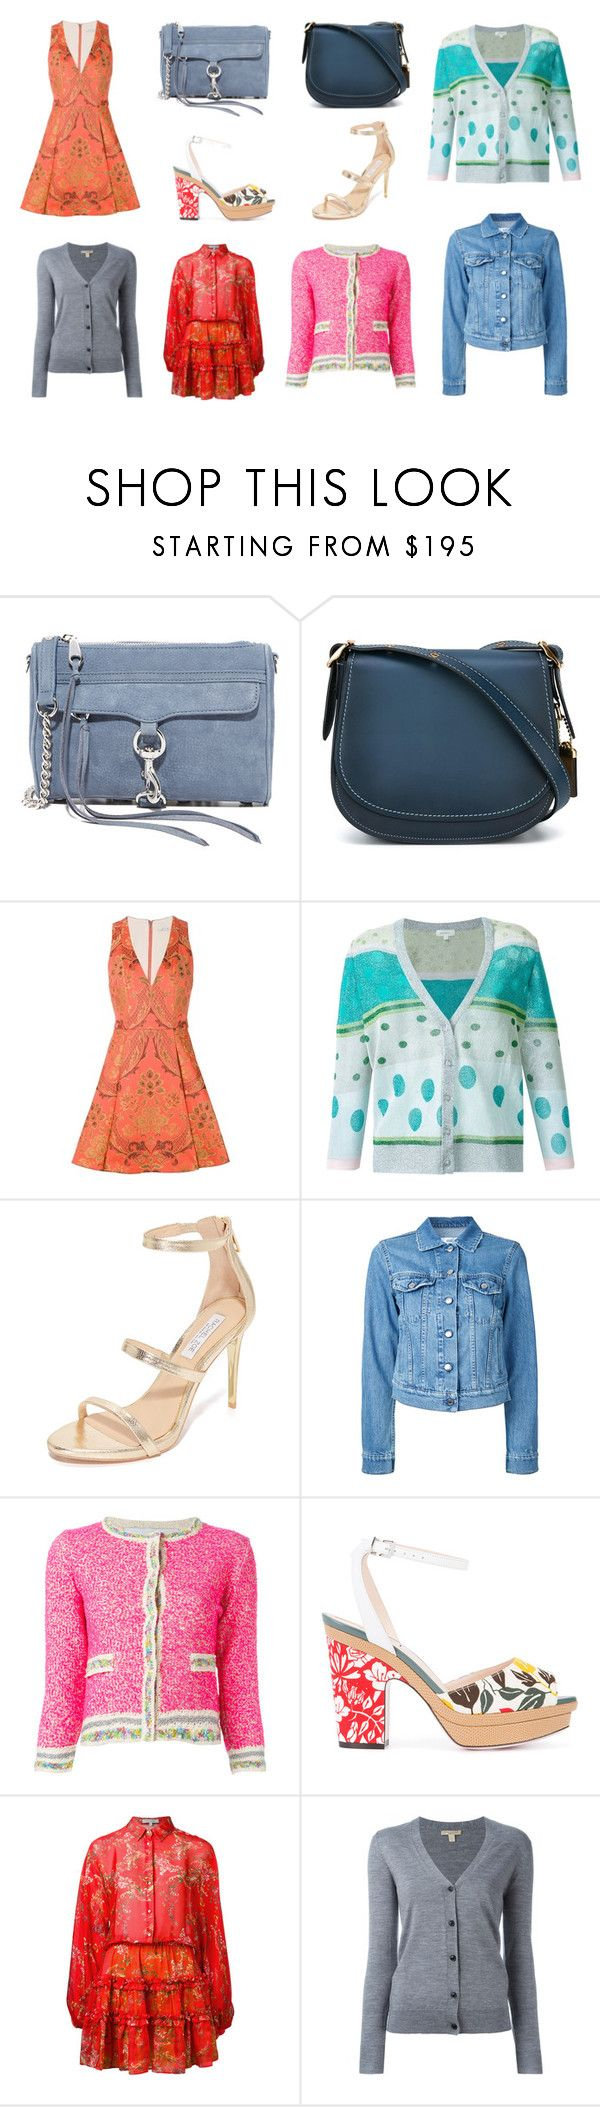 """""""spring fashion"""" by kristen-stewart-2989 ❤ liked on Polyvore featuring Rebecca Minkoff, Coach, Alice + Olivia, Delpozo, Rachel Zoe, Closed, 20.52, Fendi, Alexis and Burberry"""